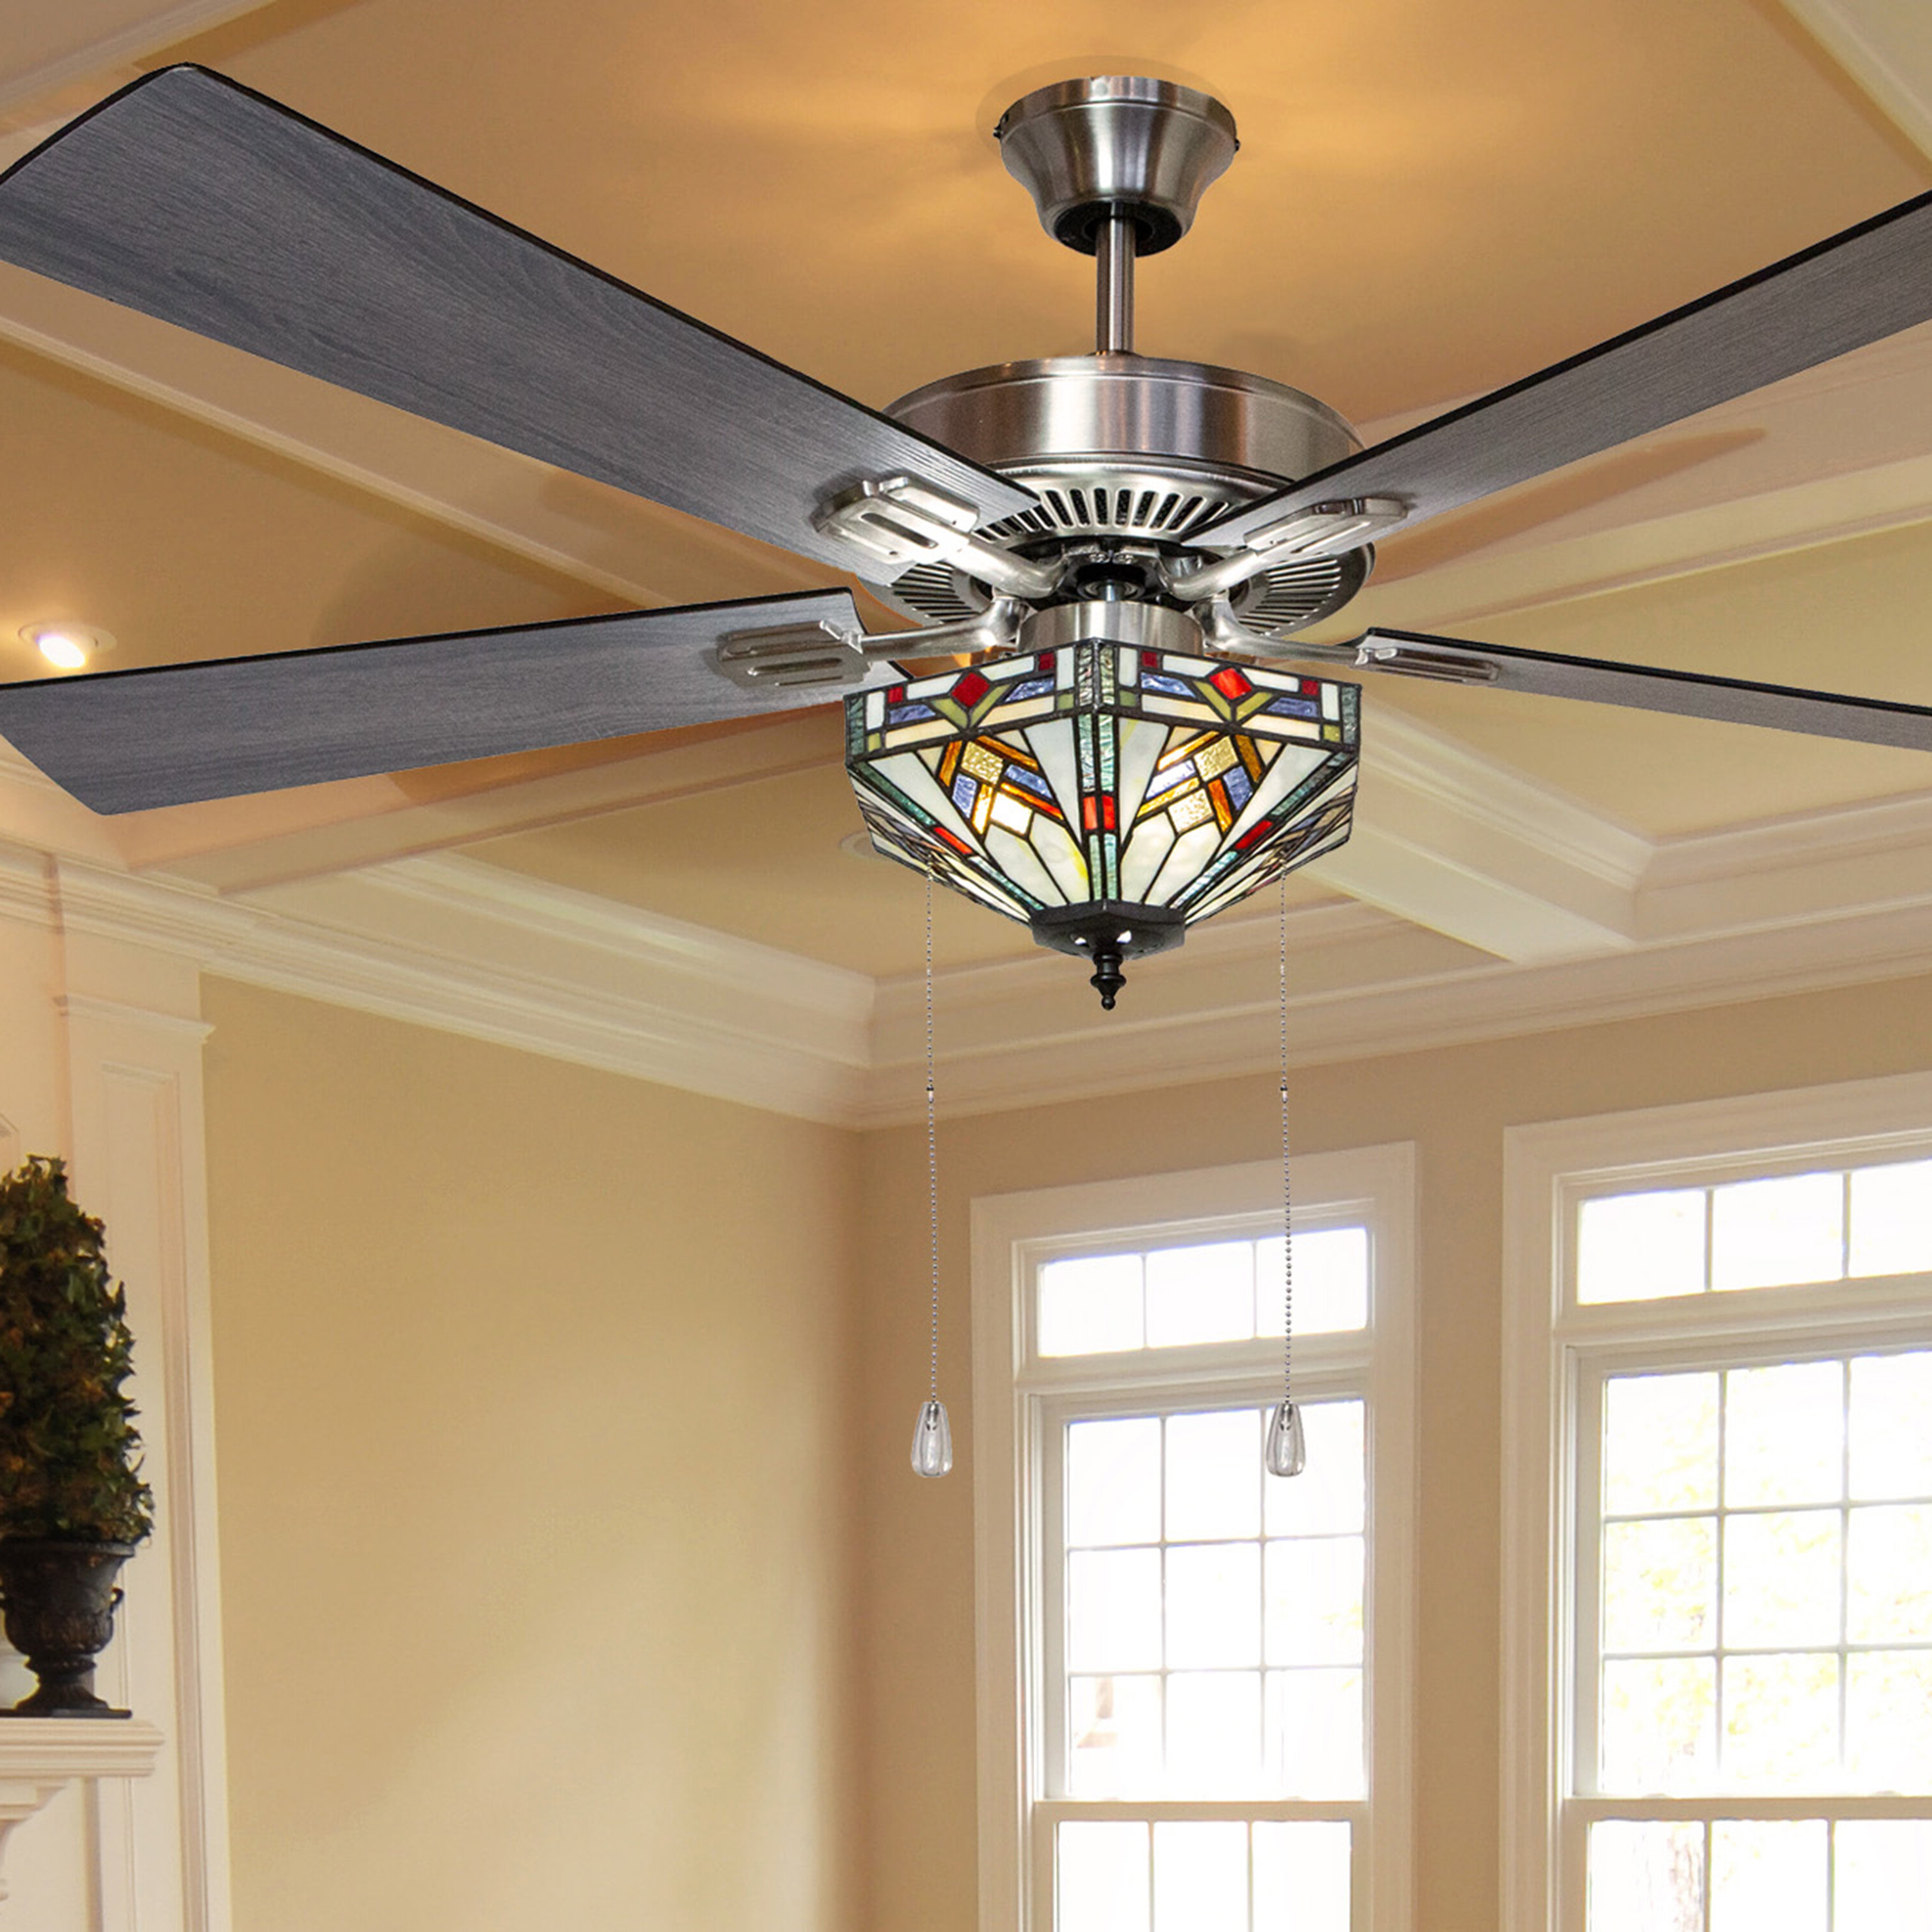 "Norah 5 Blade Ceiling Fans With Regard To Preferred 52"" Londono Bungalow Mission Glass 5 Blade Ceiling Fan With Remote, Light  Kit Included (View 13 of 20)"